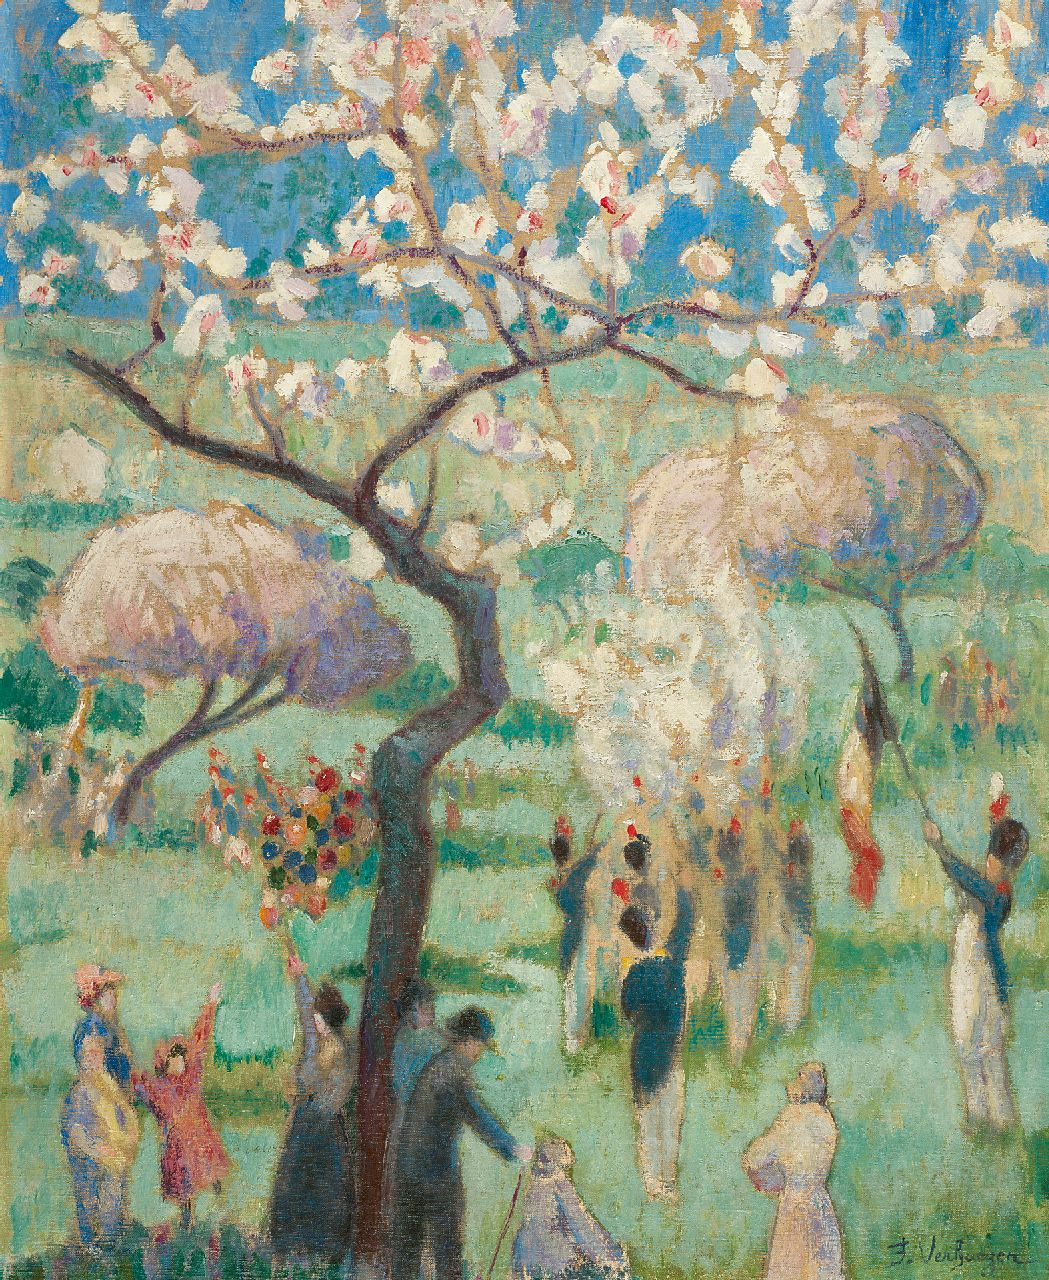 Verhaegen F.  | Fernand Verhaegen | Paintings offered for sale | The celebration of St. Rolande, Gerpinnes, oil on canvas 54.5 x 44.7 cm, signed l.r. and painted ca. 1913